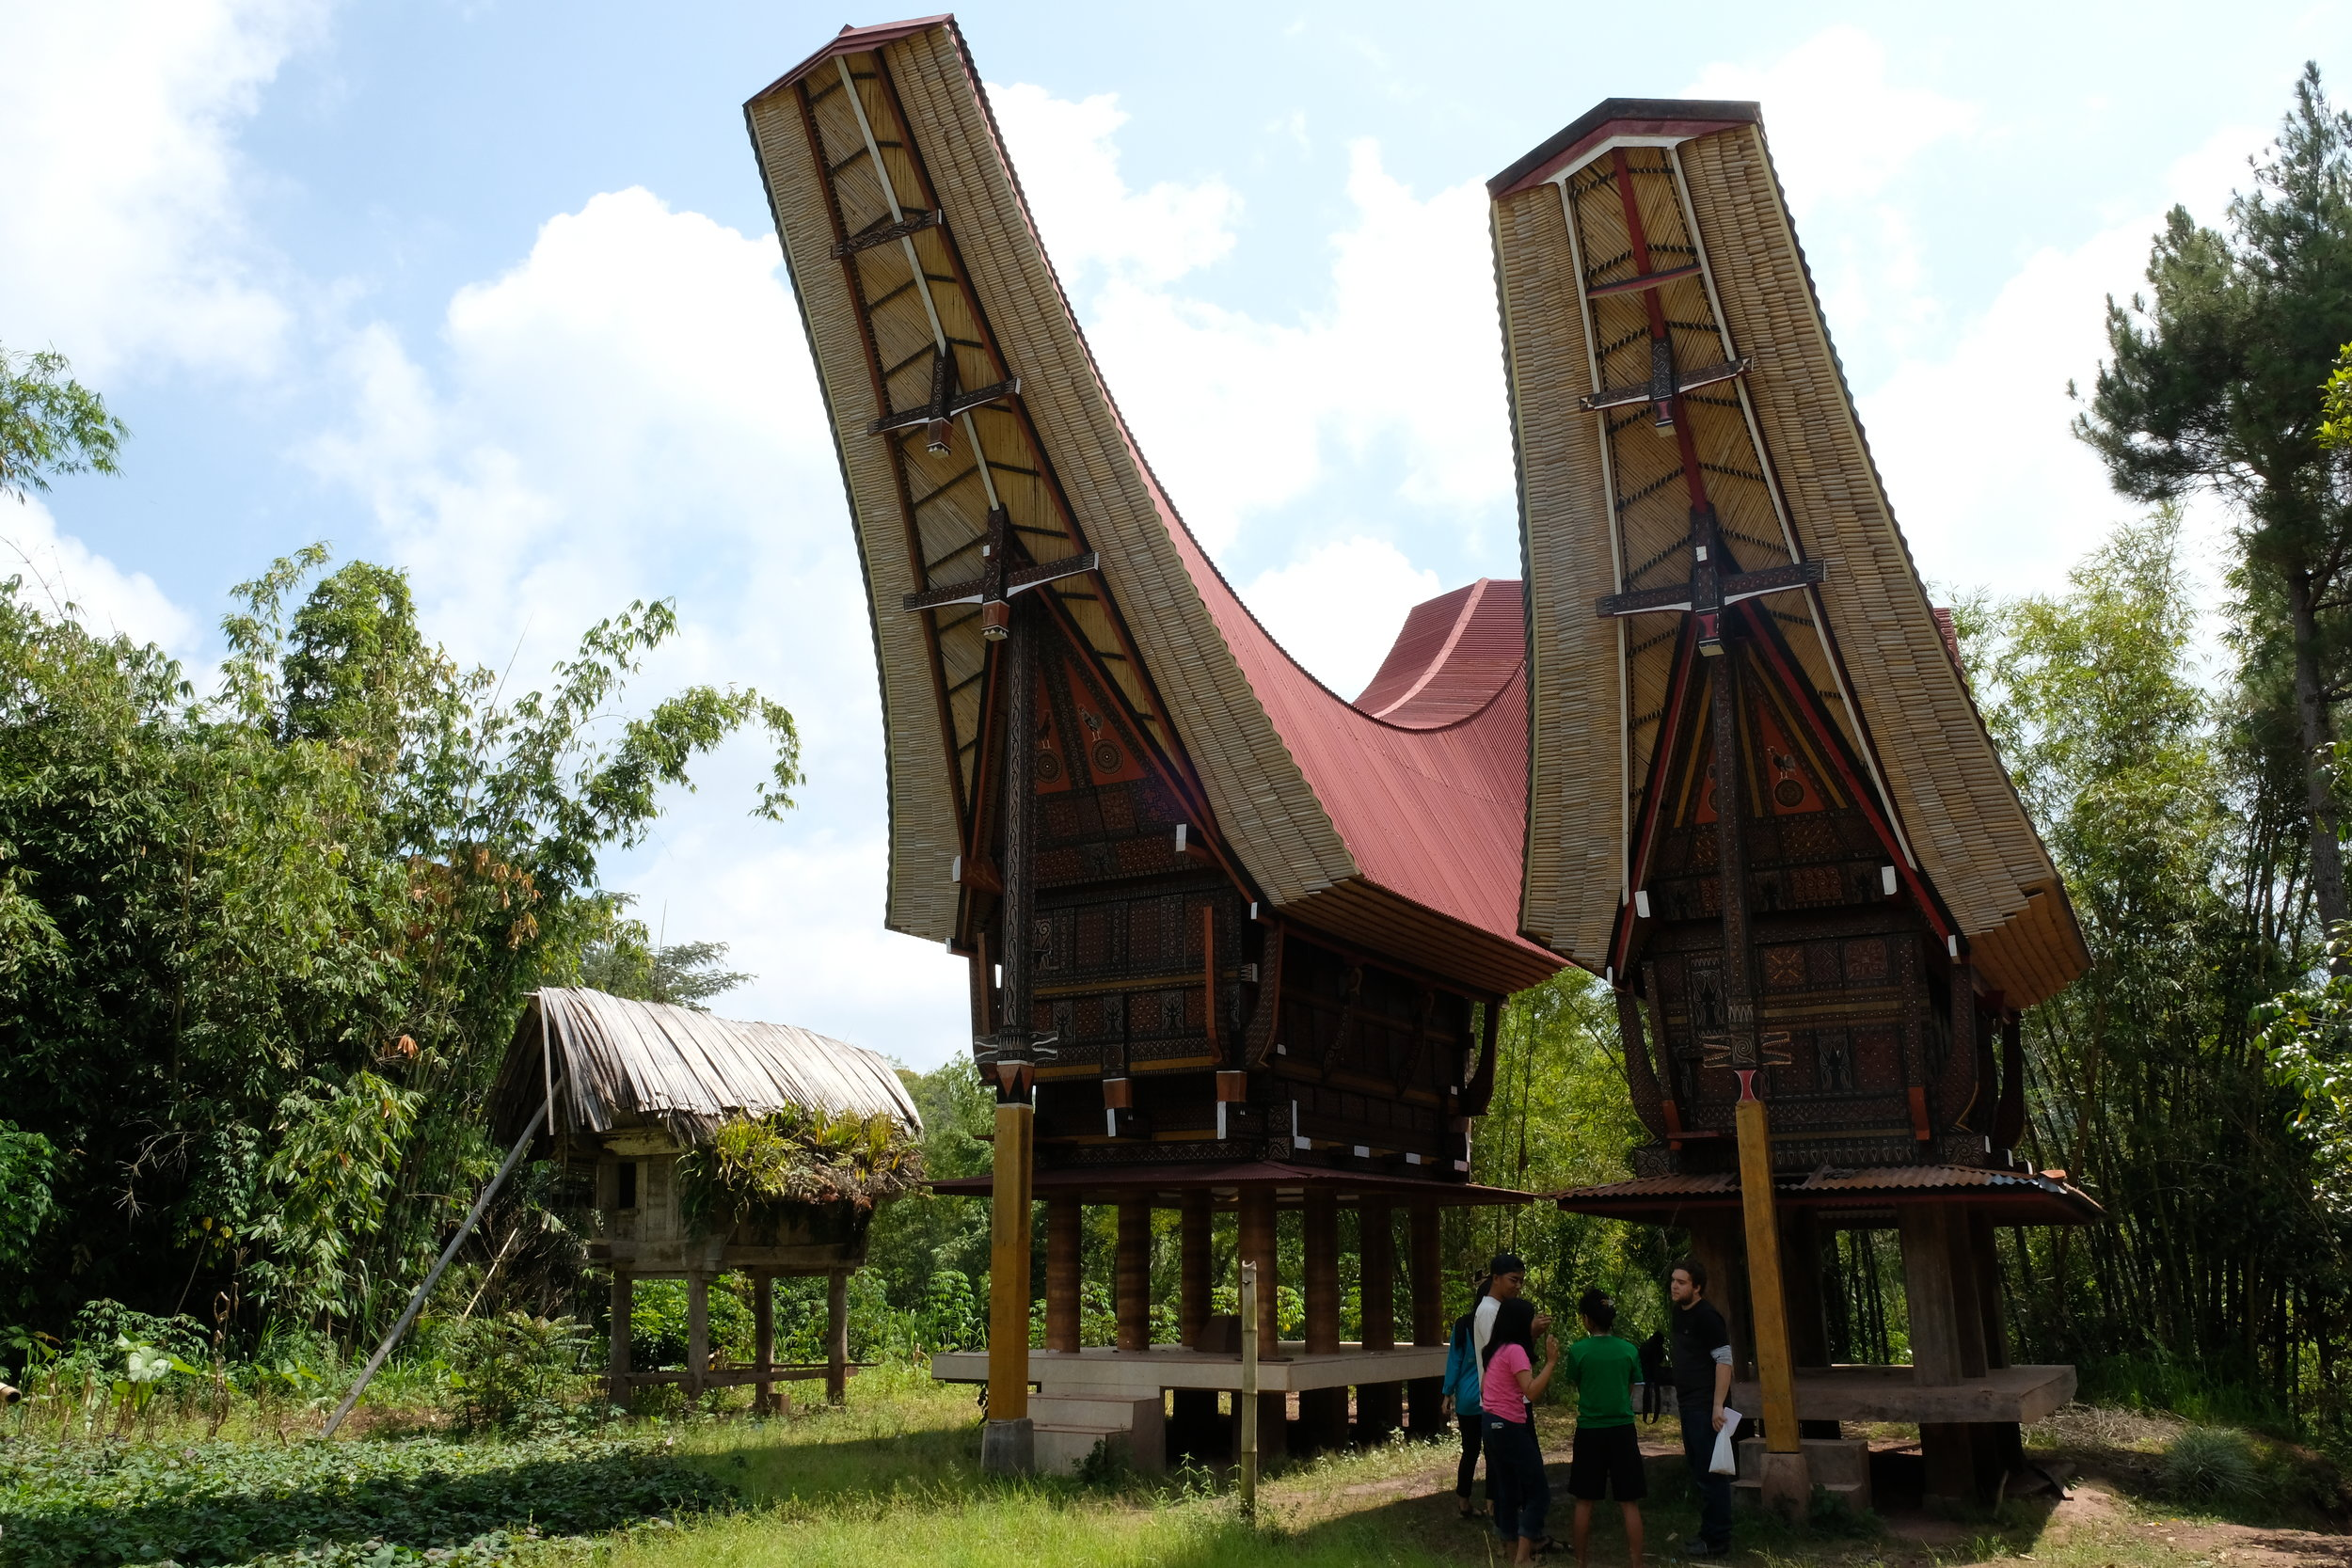 Tongkanon are traditional ancestral houses, with their visual dominance over the landscape very much reflecting the importance of funerals and death in Torajan society. In Toraja, the funeral is the centerpiece for which society, and the economy revolves around. While in some western societies, much money is dedicated to houses, or weddings, in Toraja affluence is often by how large your funeral is. A large funeral can go for 5+ days, involves the entire community and includes up to 100 animals being sacrificed. A prized buffalo can cost up to $100 000 (AUD), although most range from $1000- $10 000. It is not uncommon for the body to be preserved, and funerals to occur 3-5 years after the individuals death, although the longer you wait, the more the community expects a large event.